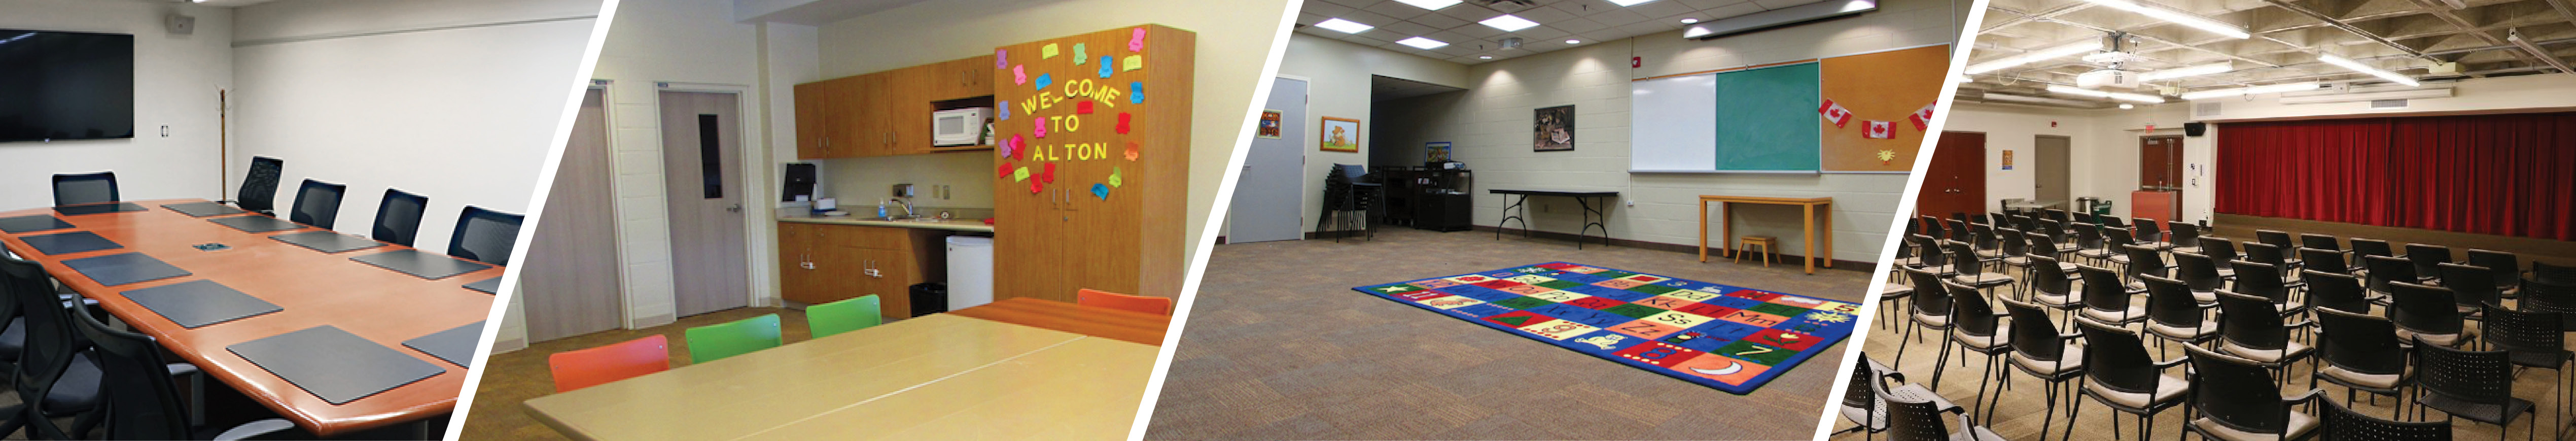 Banner image of rooms that available to rent for public use at the Burlington Public Library. Currently suspended due to COVID.